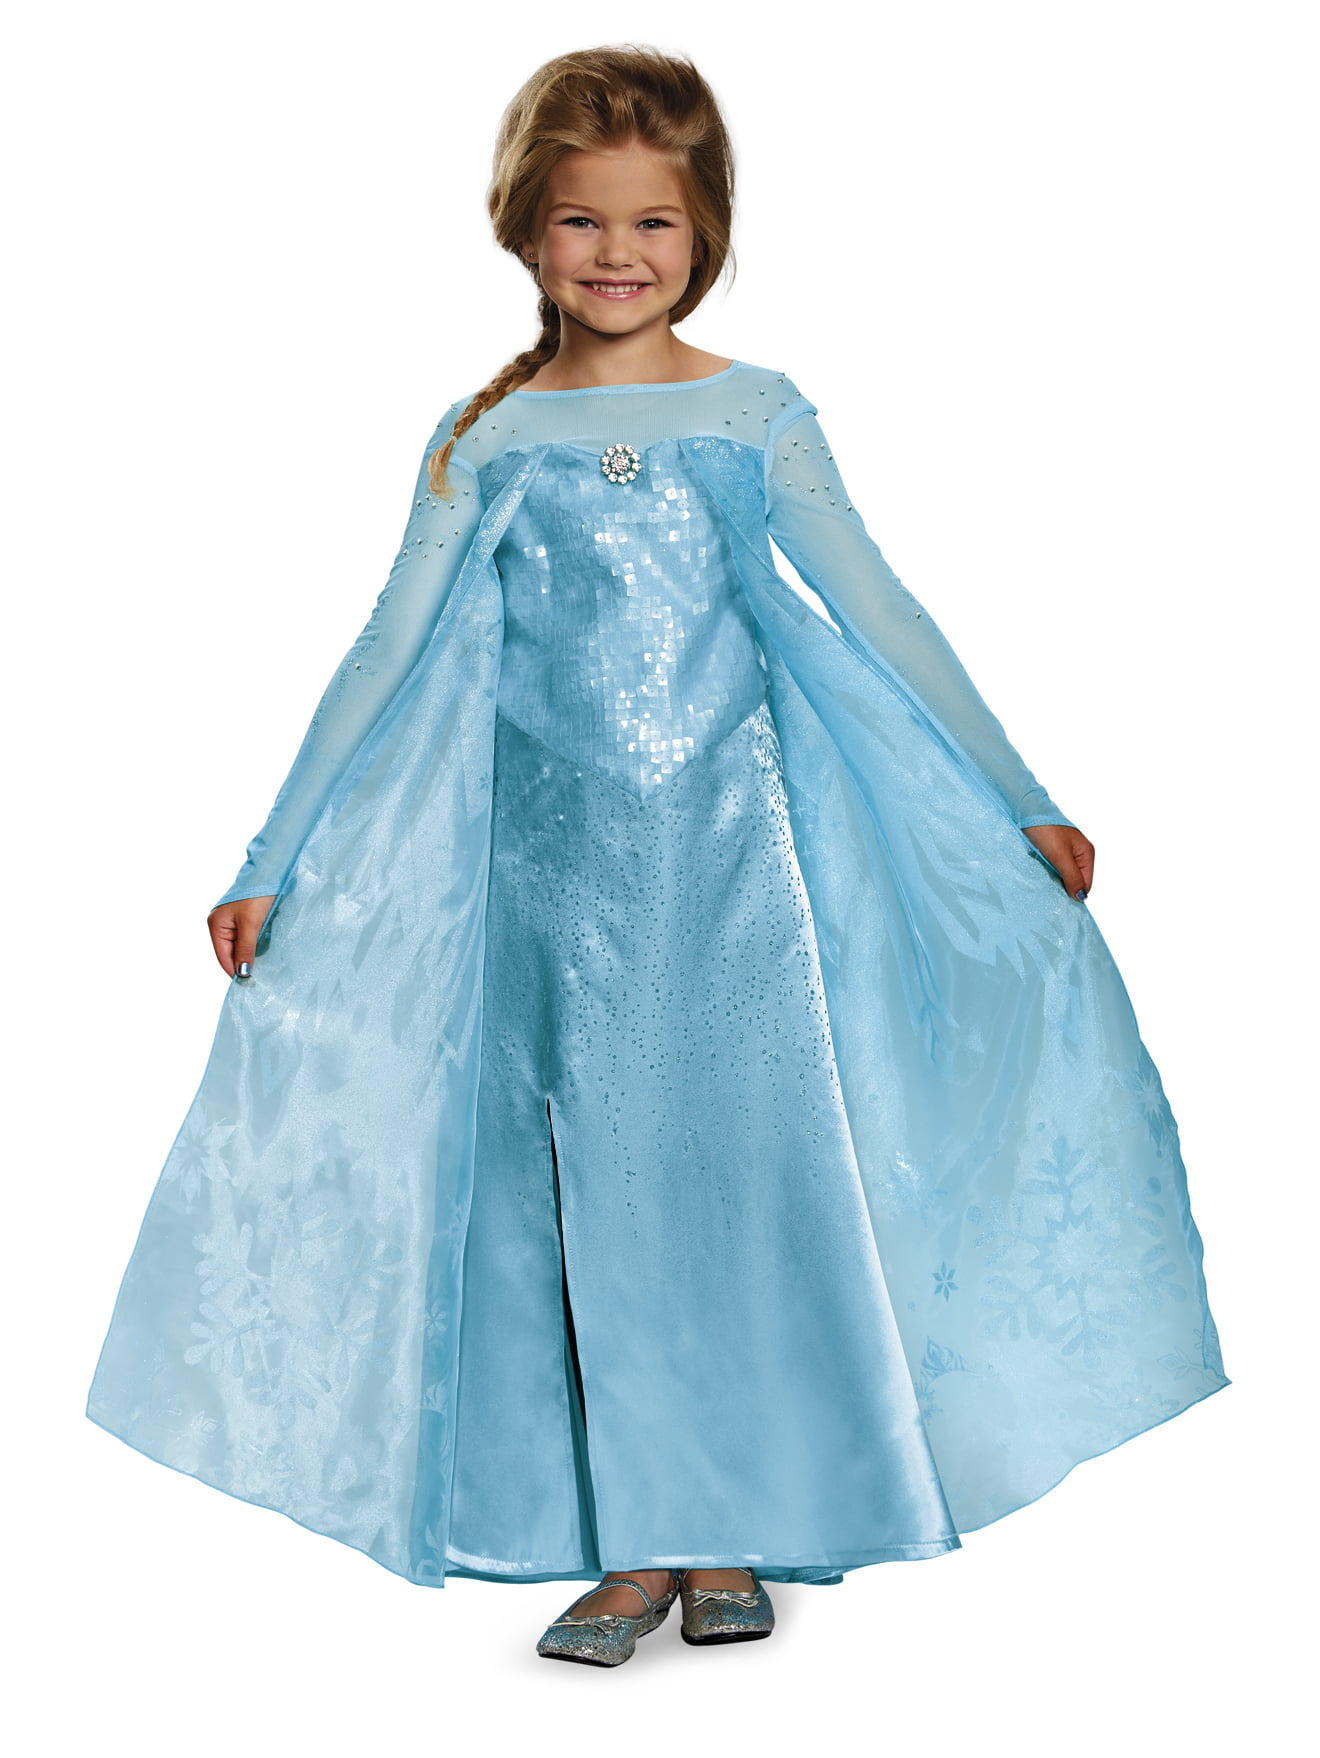 For adults, the Frozen collection also includes an adult Elsa costume that will make you look like the real thing. Don't forget some awesome Frozen accessories as .